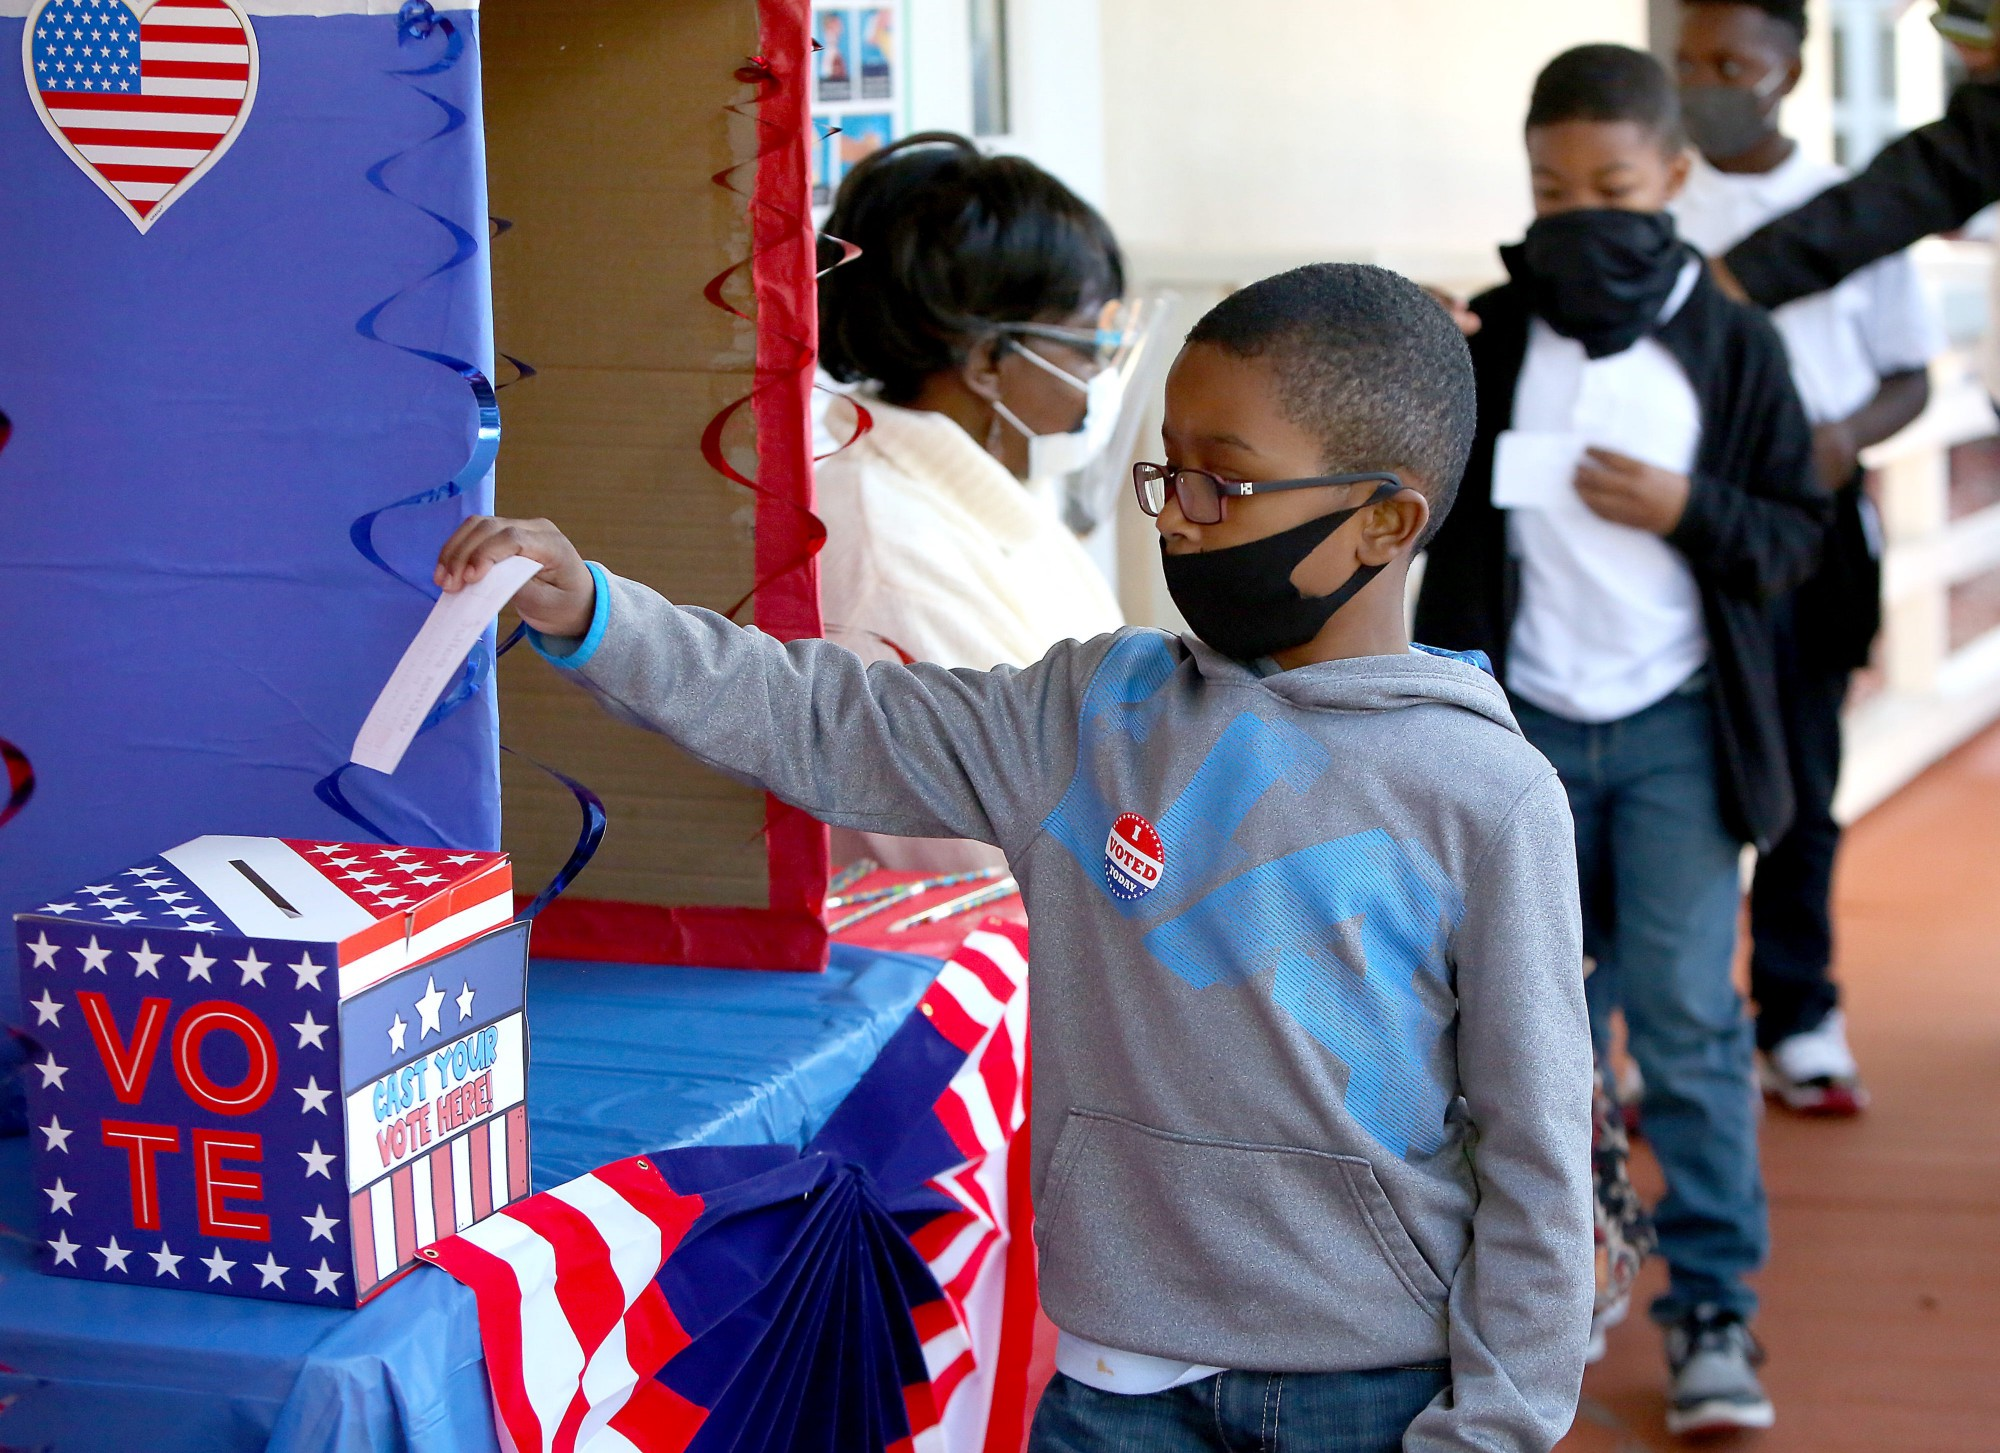 A 2nd-grader votes in a mock election at his school in Gainesville, Florida, November 3, 2020. Photo by Brad McClenny/Reuters